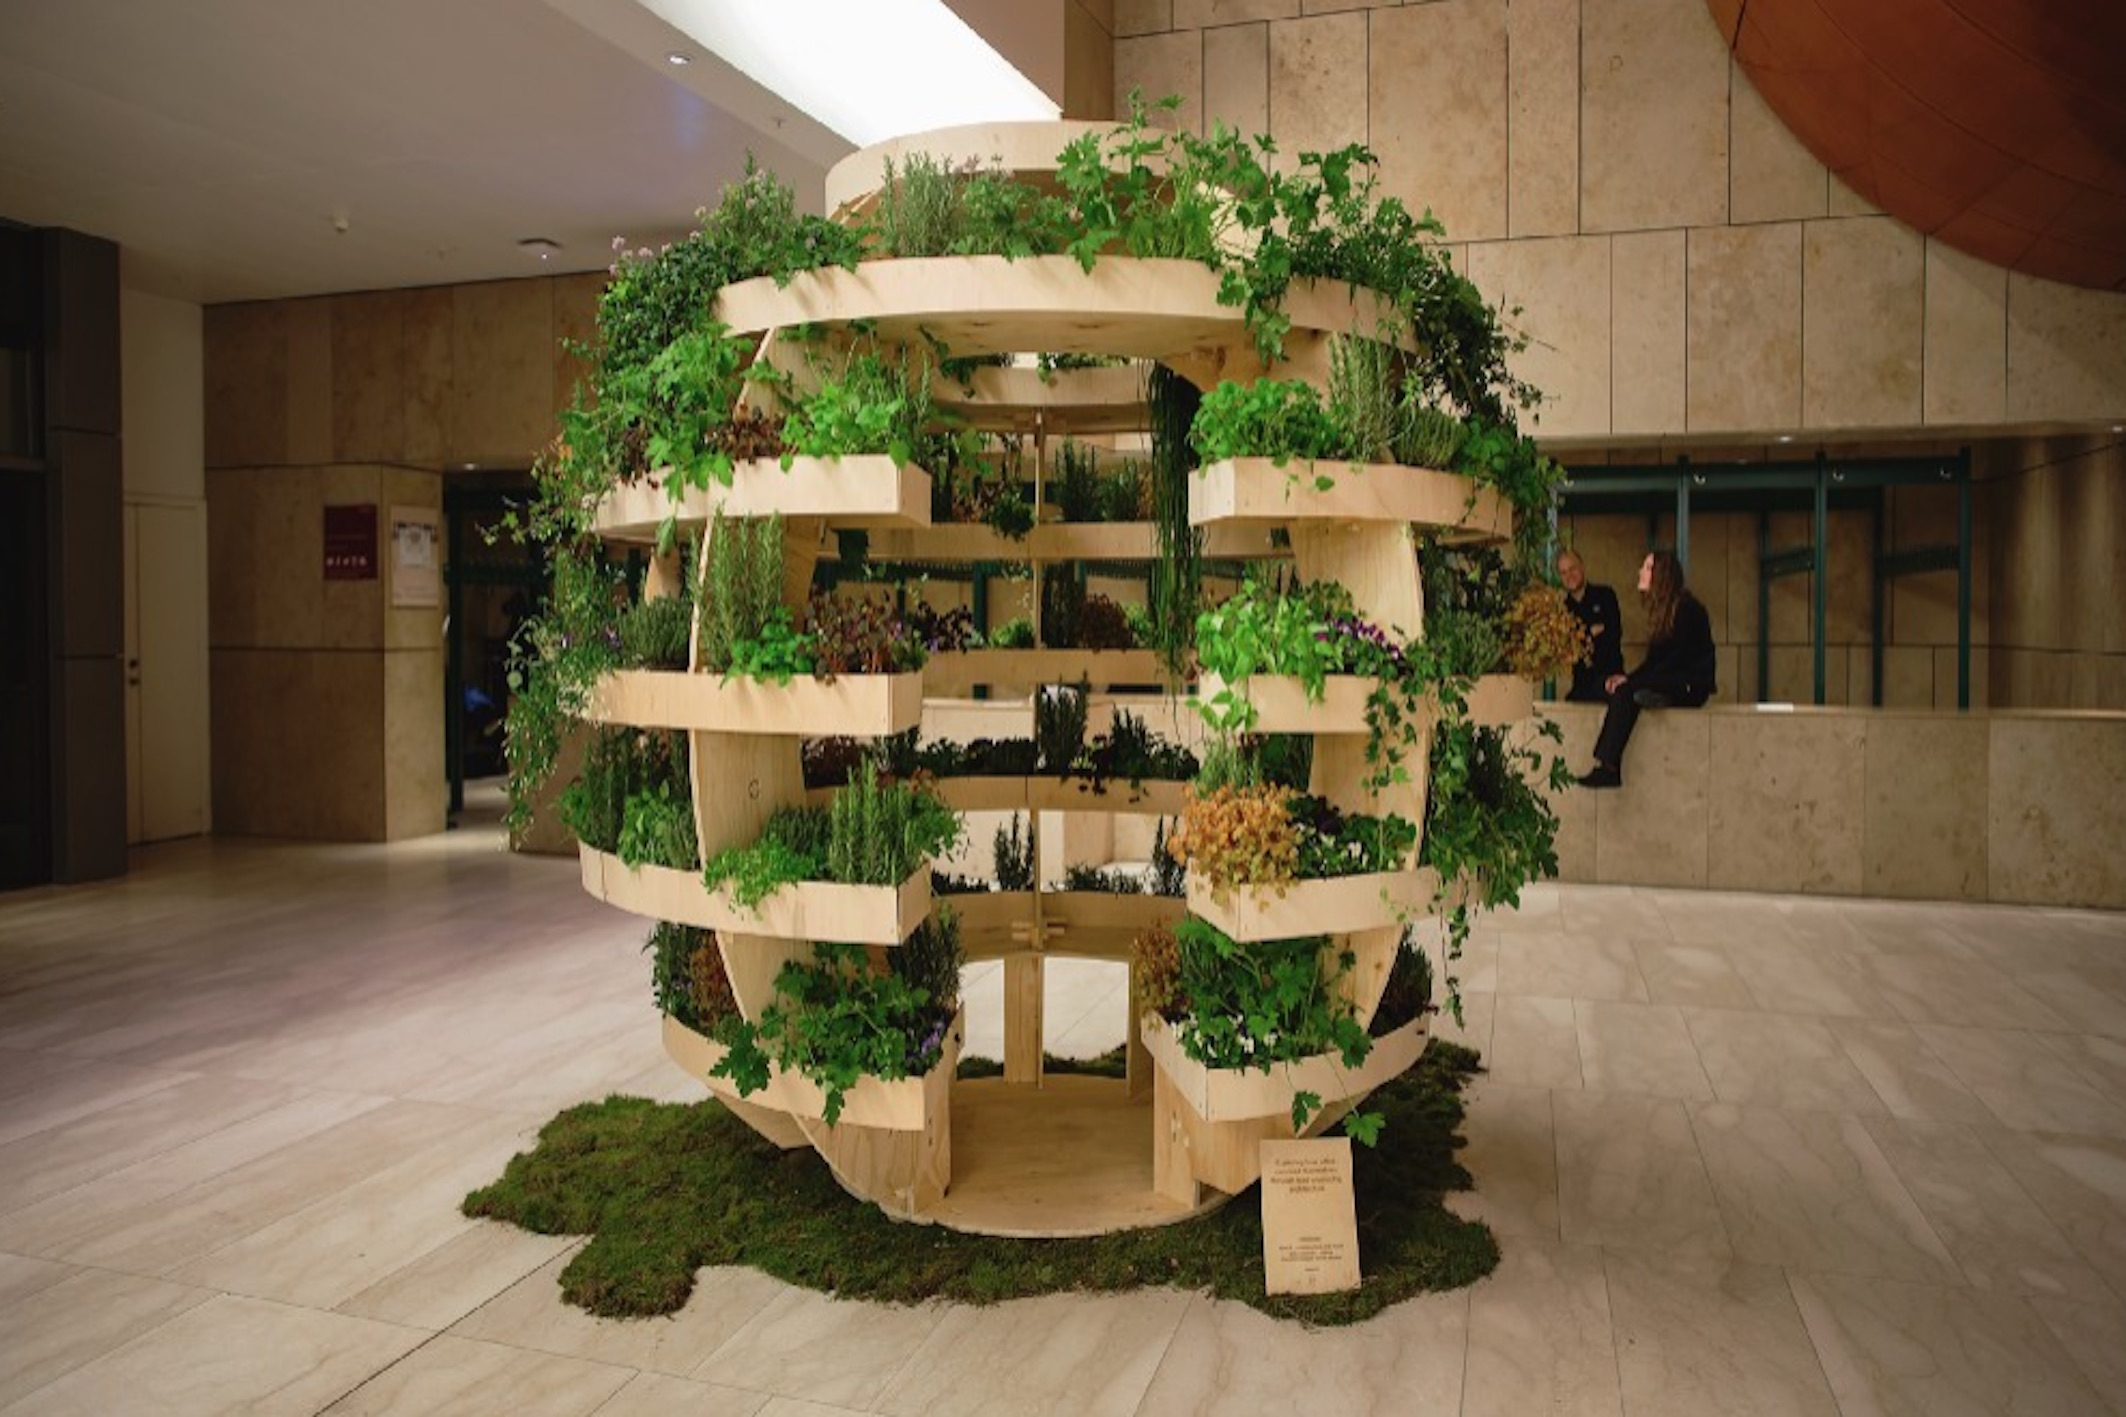 IKEA Garden Sphere Free Plans For A Sustainable